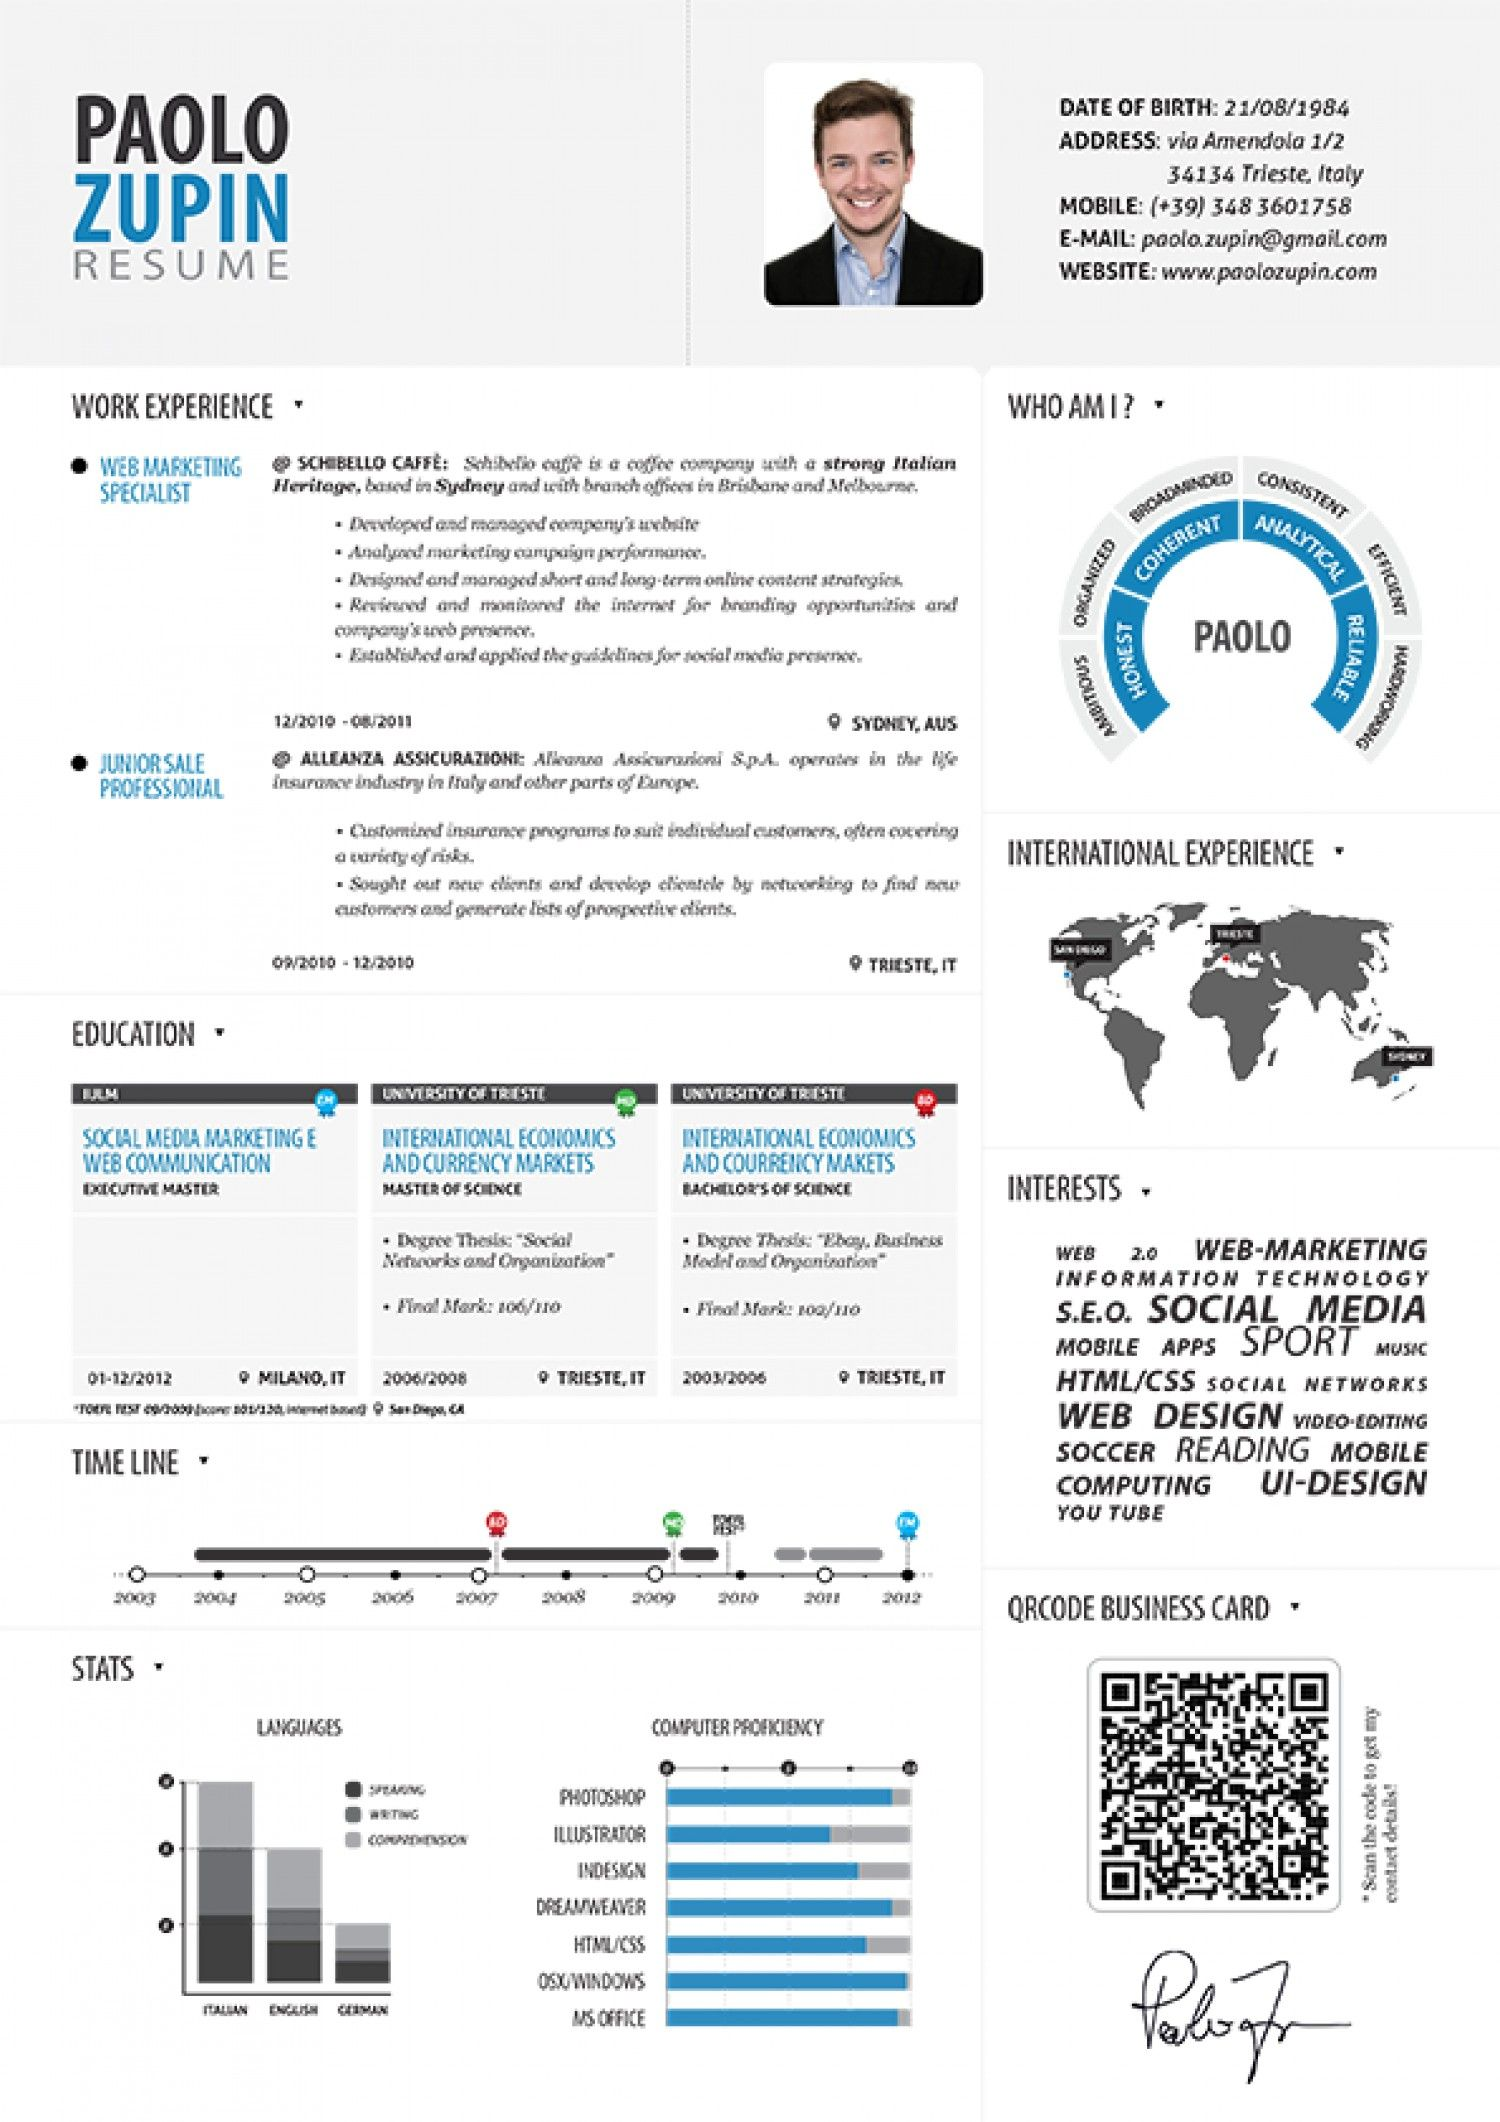 Opposenewapstandardsus  Remarkable  Images About Infographic Resume On Pinterest  Infographic  With Outstanding  Images About Infographic Resume On Pinterest  Infographic Resume Resume And Business Resume With Enchanting Great Resume Objectives Also Resume For Cashier In Addition Customer Service Resume Samples And Profile On Resume As Well As Action Words For Resumes Additionally College Freshman Resume From Pinterestcom With Opposenewapstandardsus  Outstanding  Images About Infographic Resume On Pinterest  Infographic  With Enchanting  Images About Infographic Resume On Pinterest  Infographic Resume Resume And Business Resume And Remarkable Great Resume Objectives Also Resume For Cashier In Addition Customer Service Resume Samples From Pinterestcom